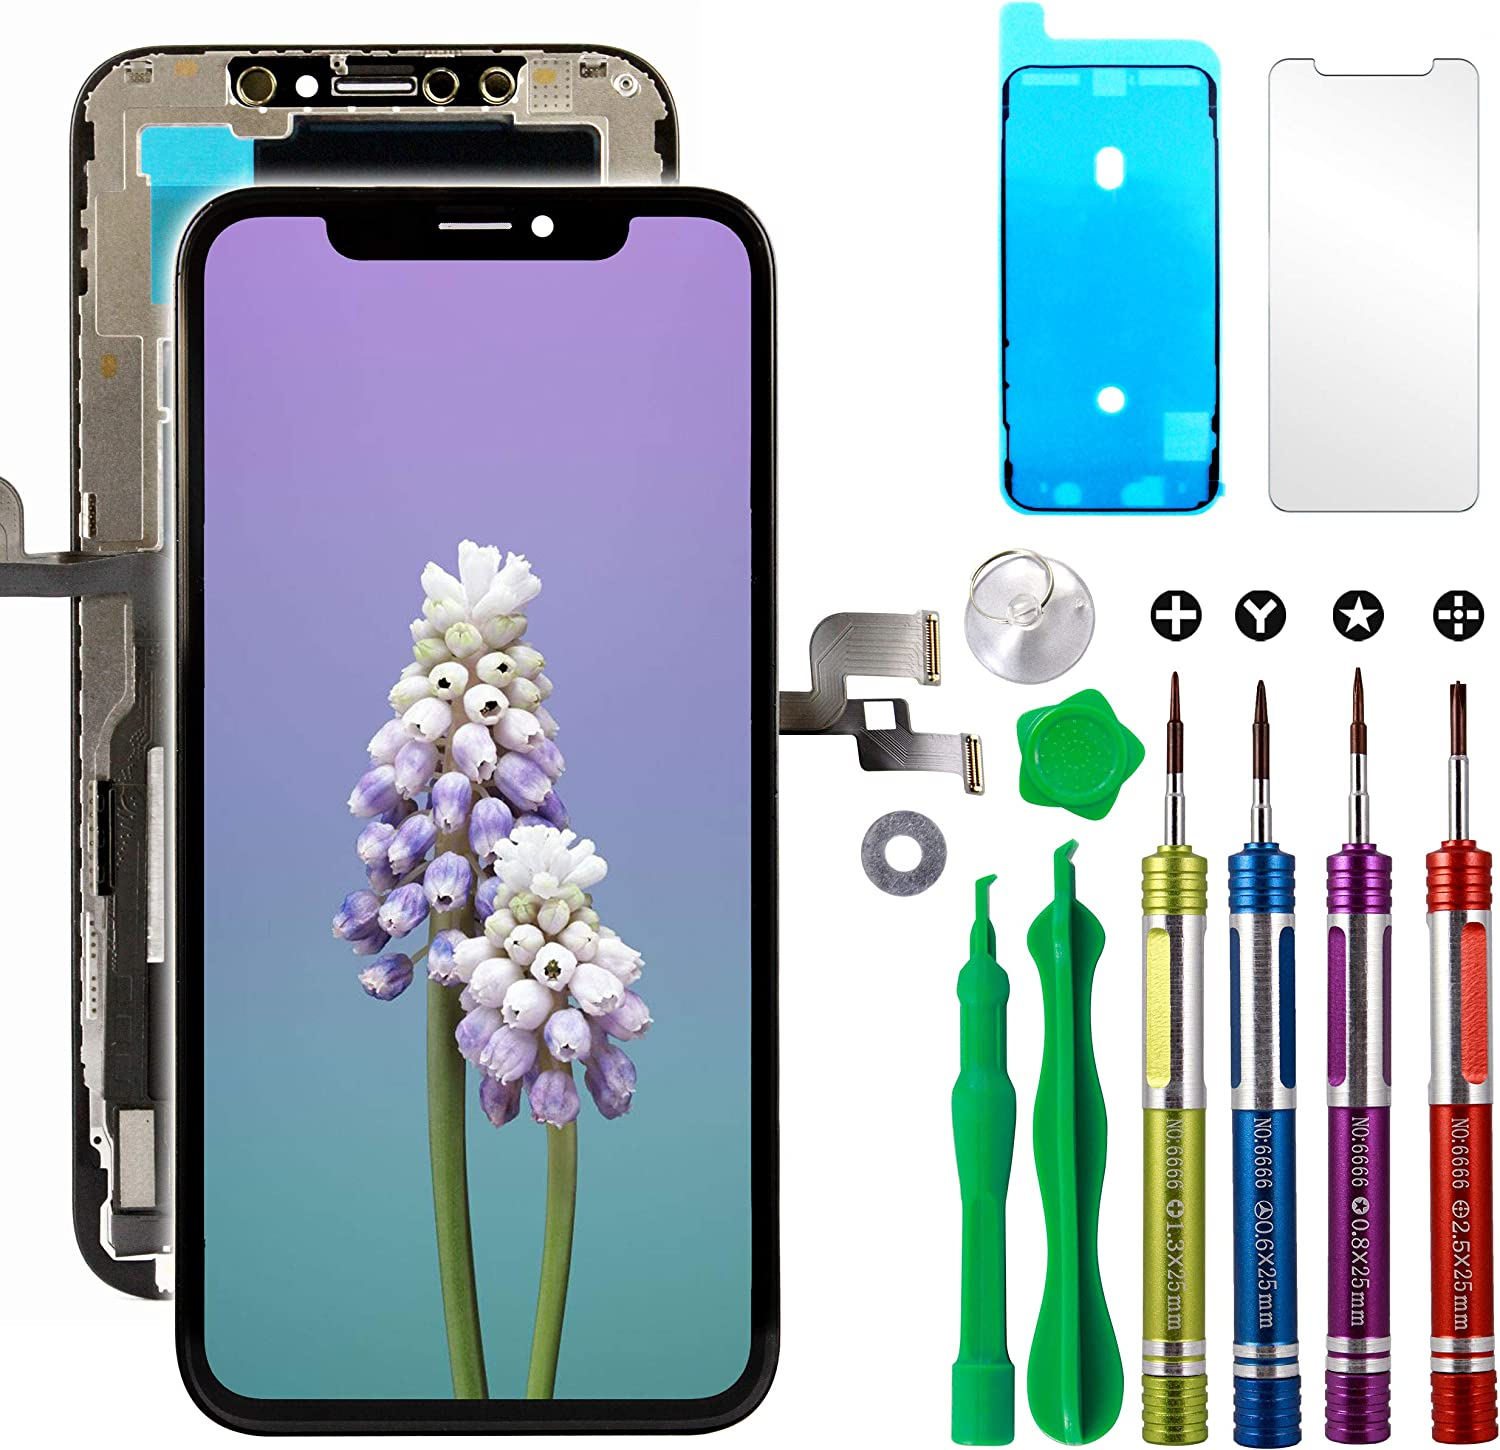 Ace Tech Compatible with iPhone Xs LCD Screen Replacement 5.8 inch (Model A1920, A2097, A2098,A2099, A2100) LCD Touch Screen Display Digitizer Repair Kit Assembly with Complete Repair Tools